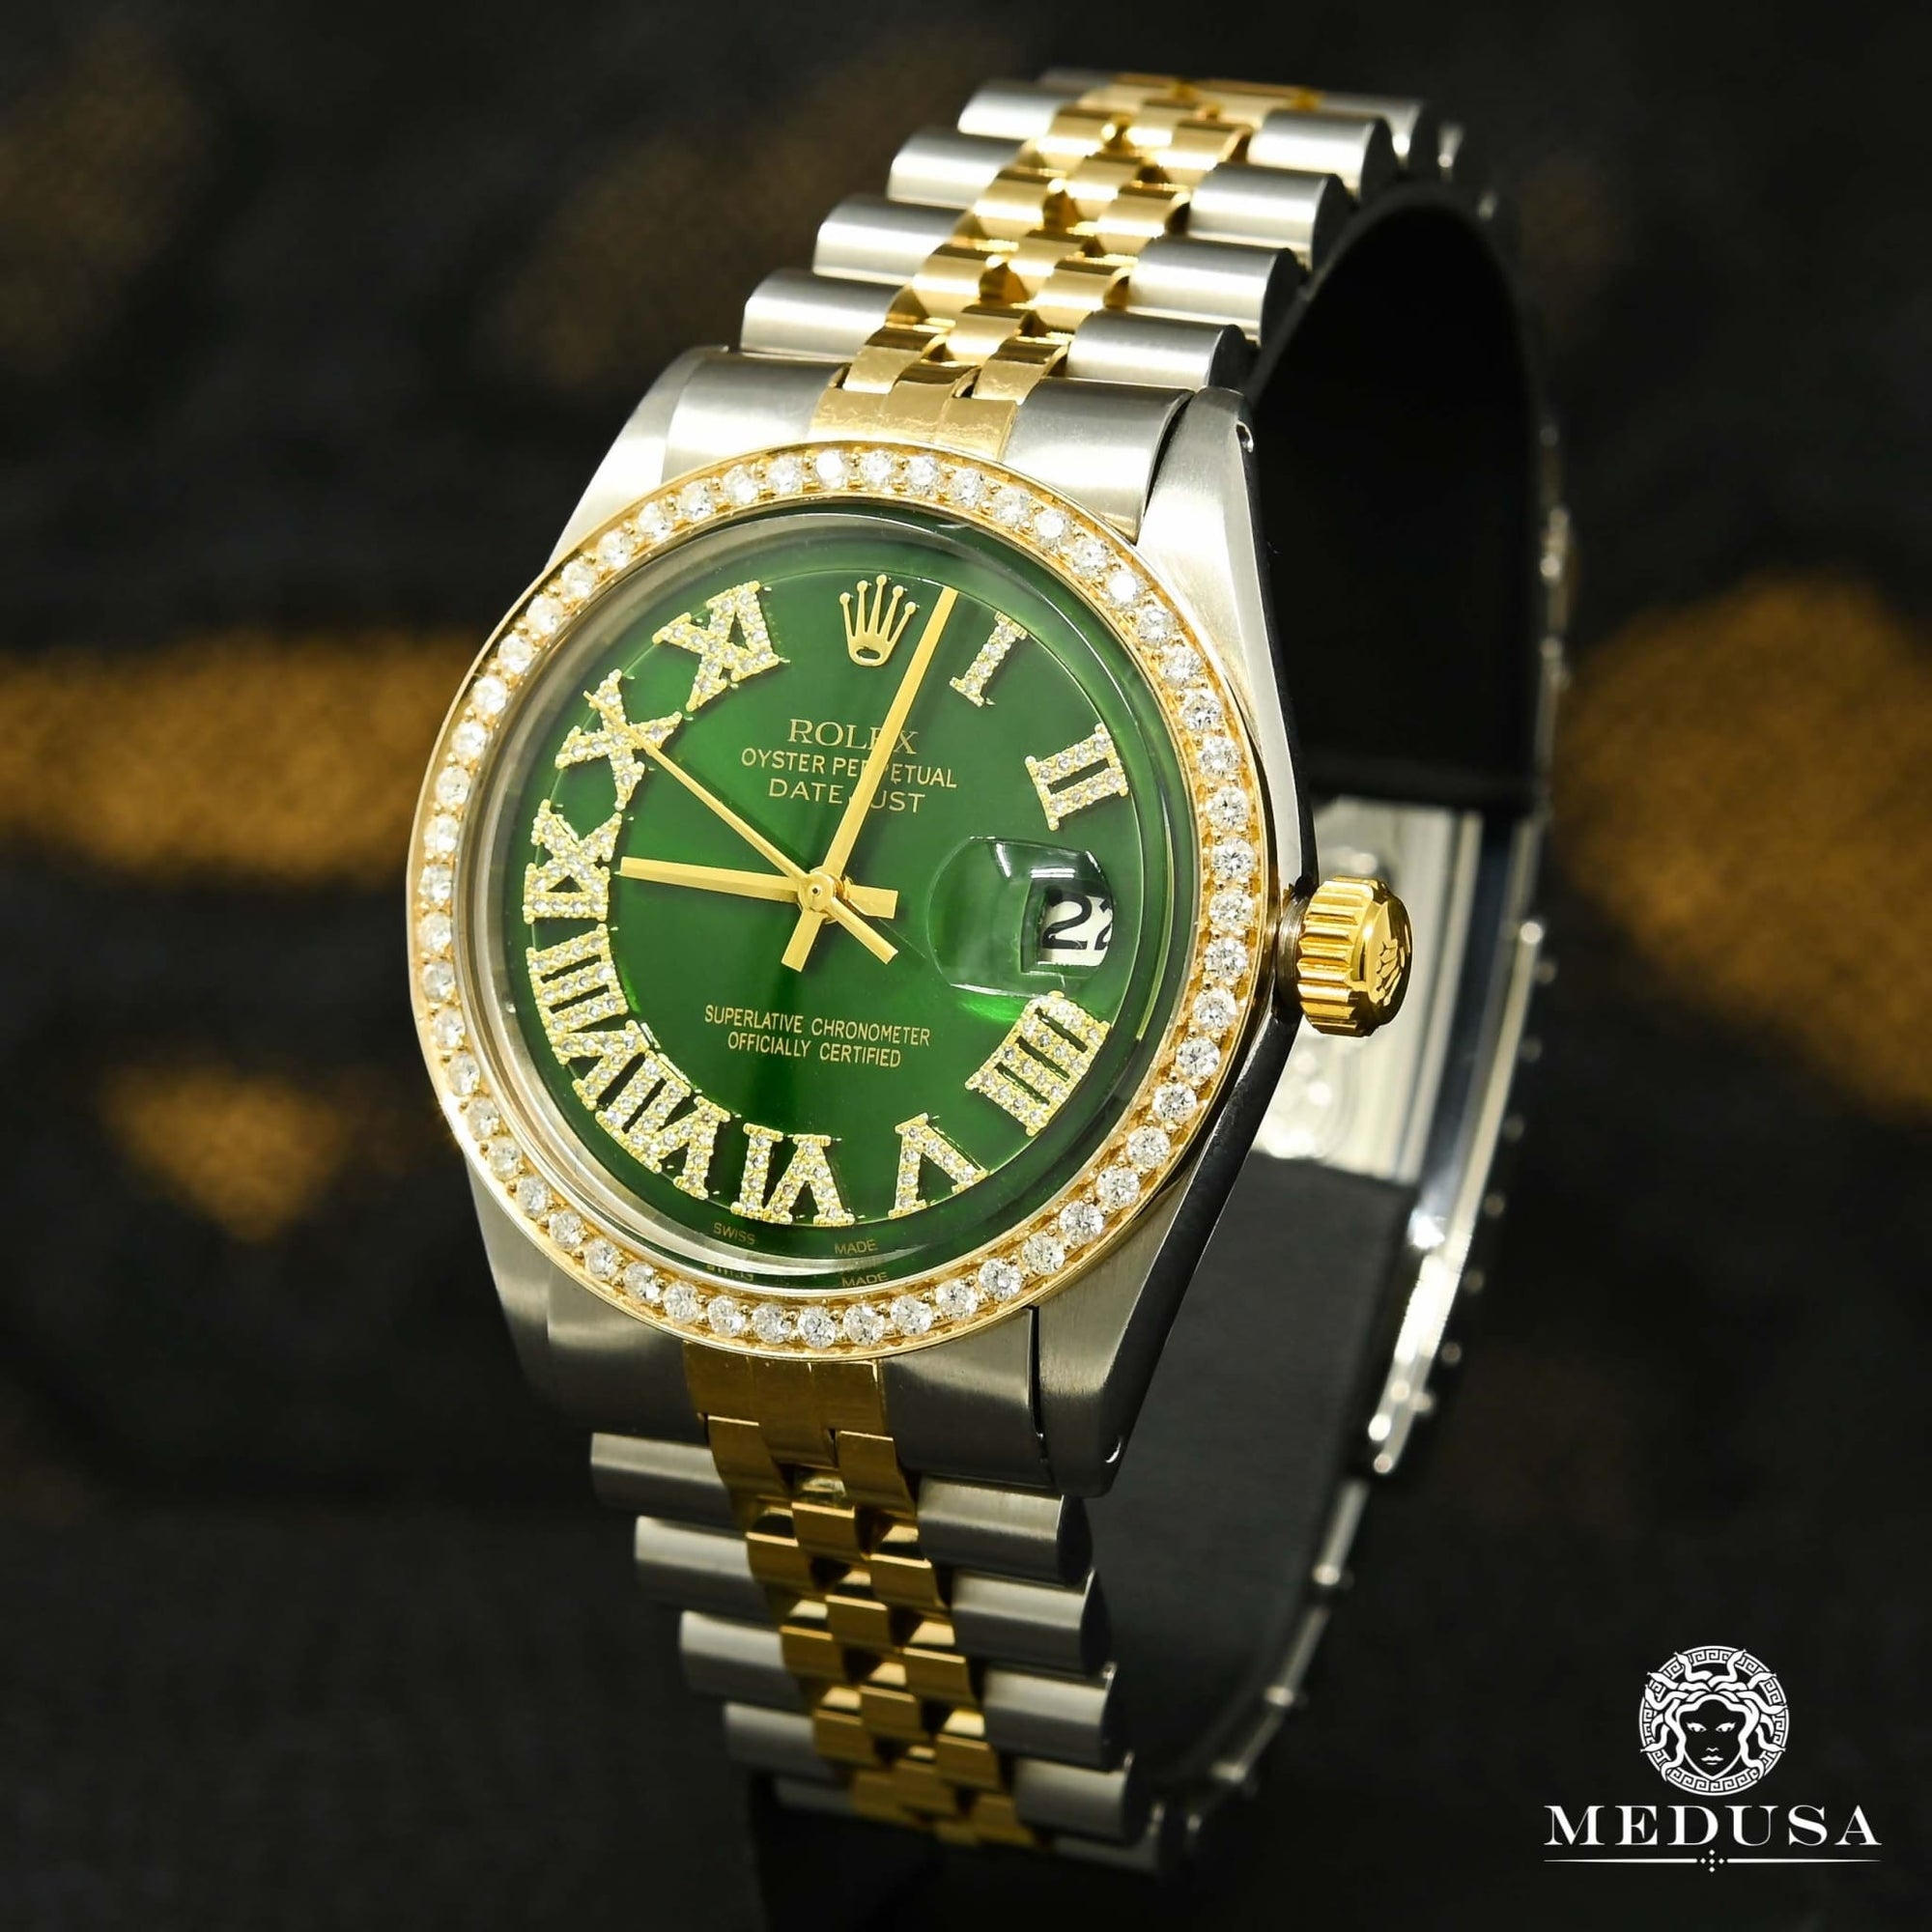 Rolex Datejust 36mm - Green Vintage